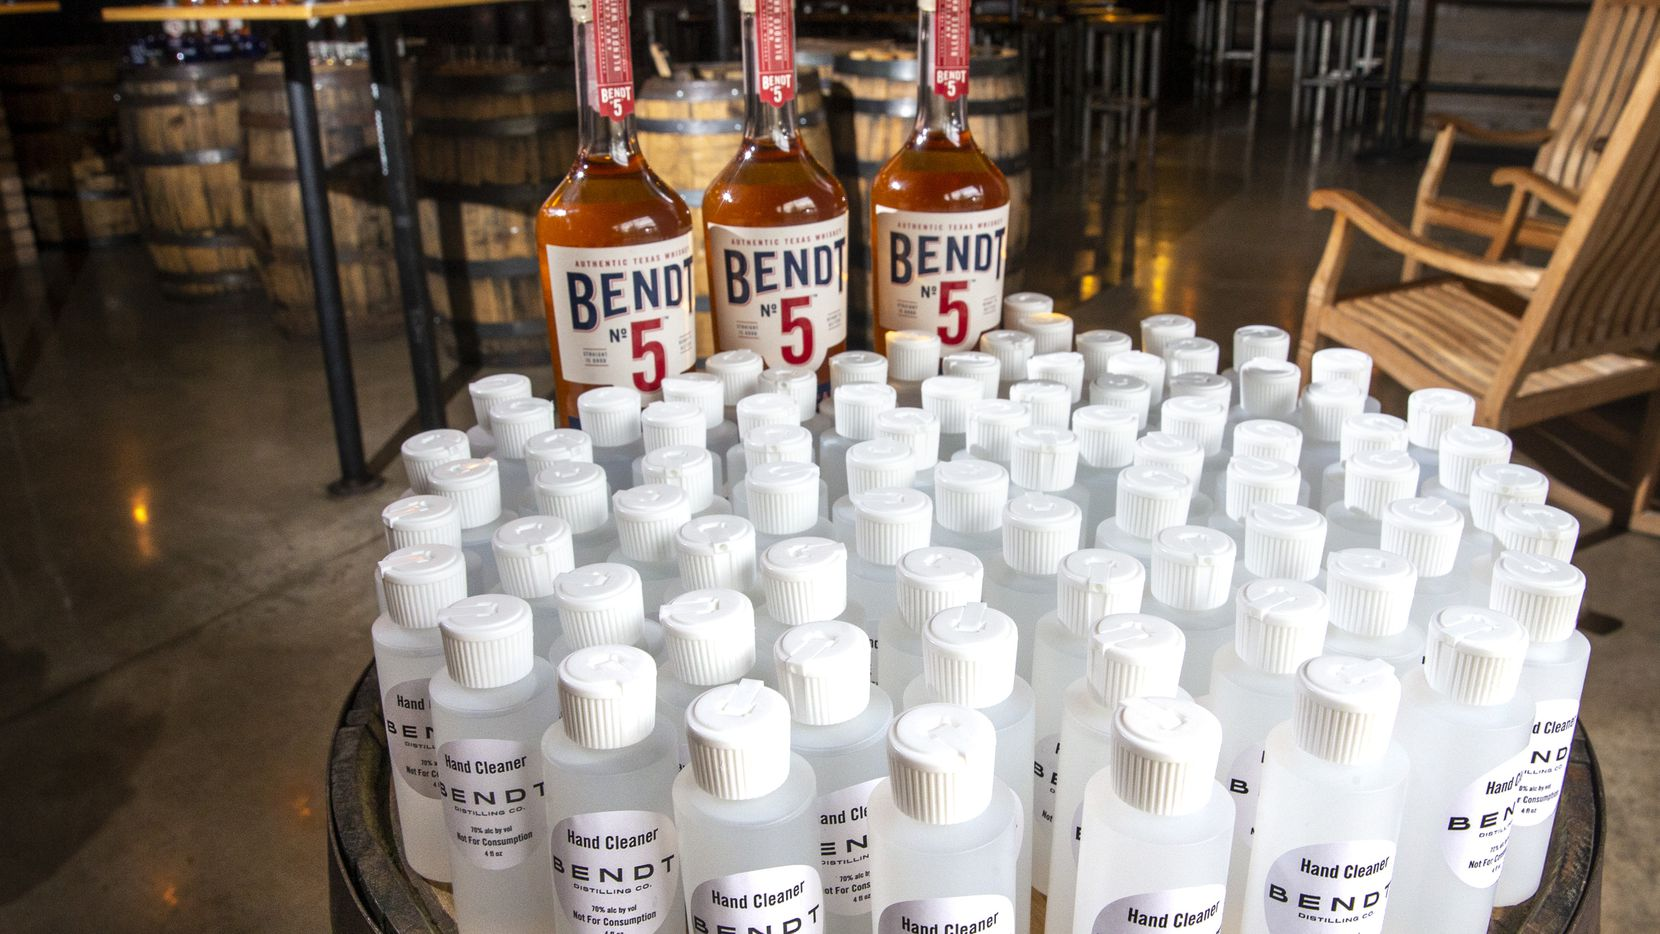 Bendt Distilling Co. en Lewisville regala botellas de alcohol desinfectante.